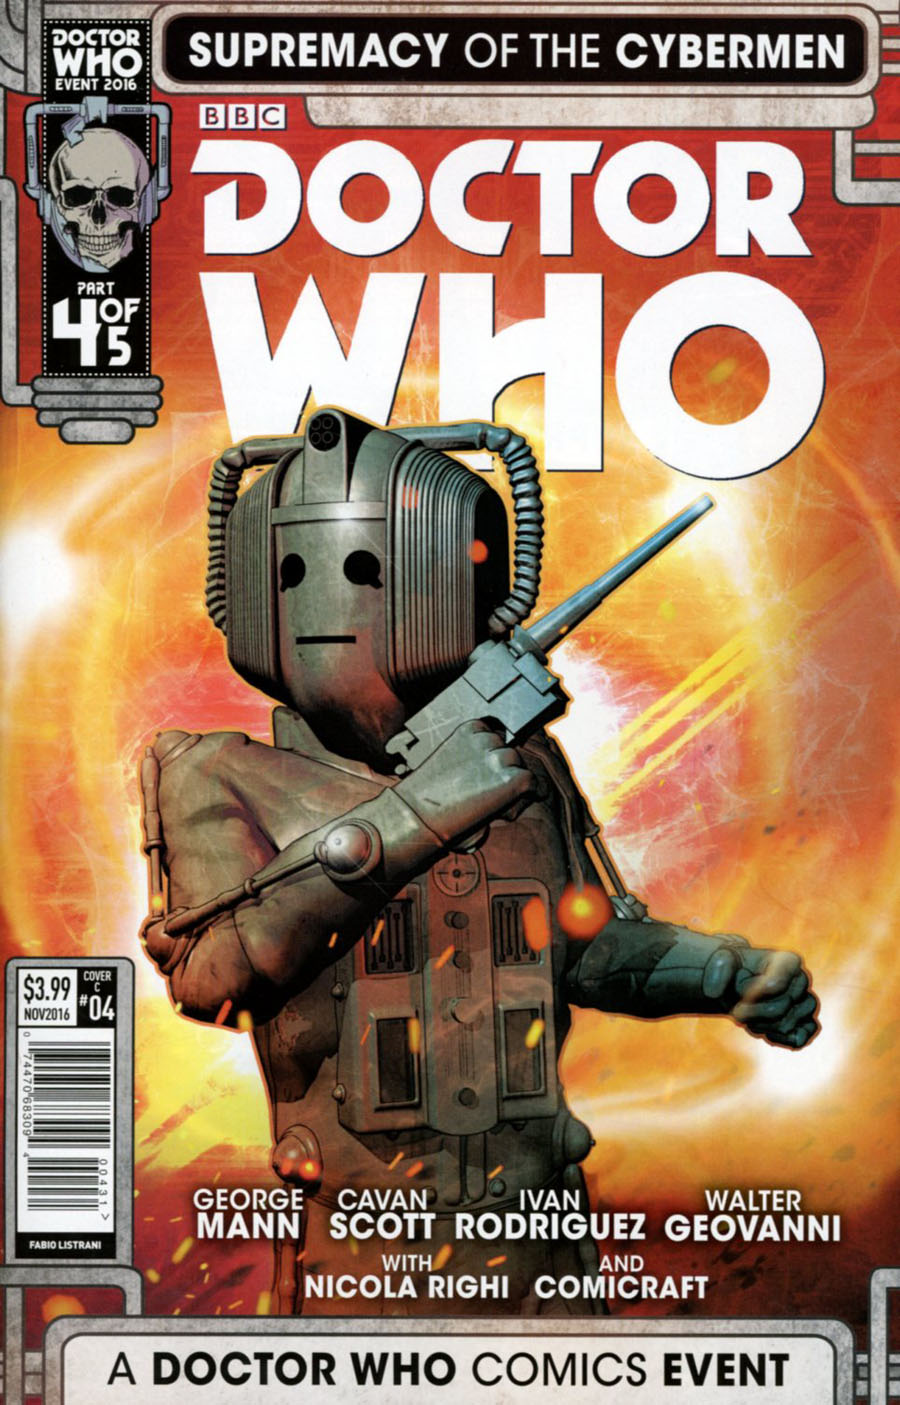 Doctor Who Event 2016 Supremacy Of The Cybermen #4 Cover C Variant Fabio Listrani Cover